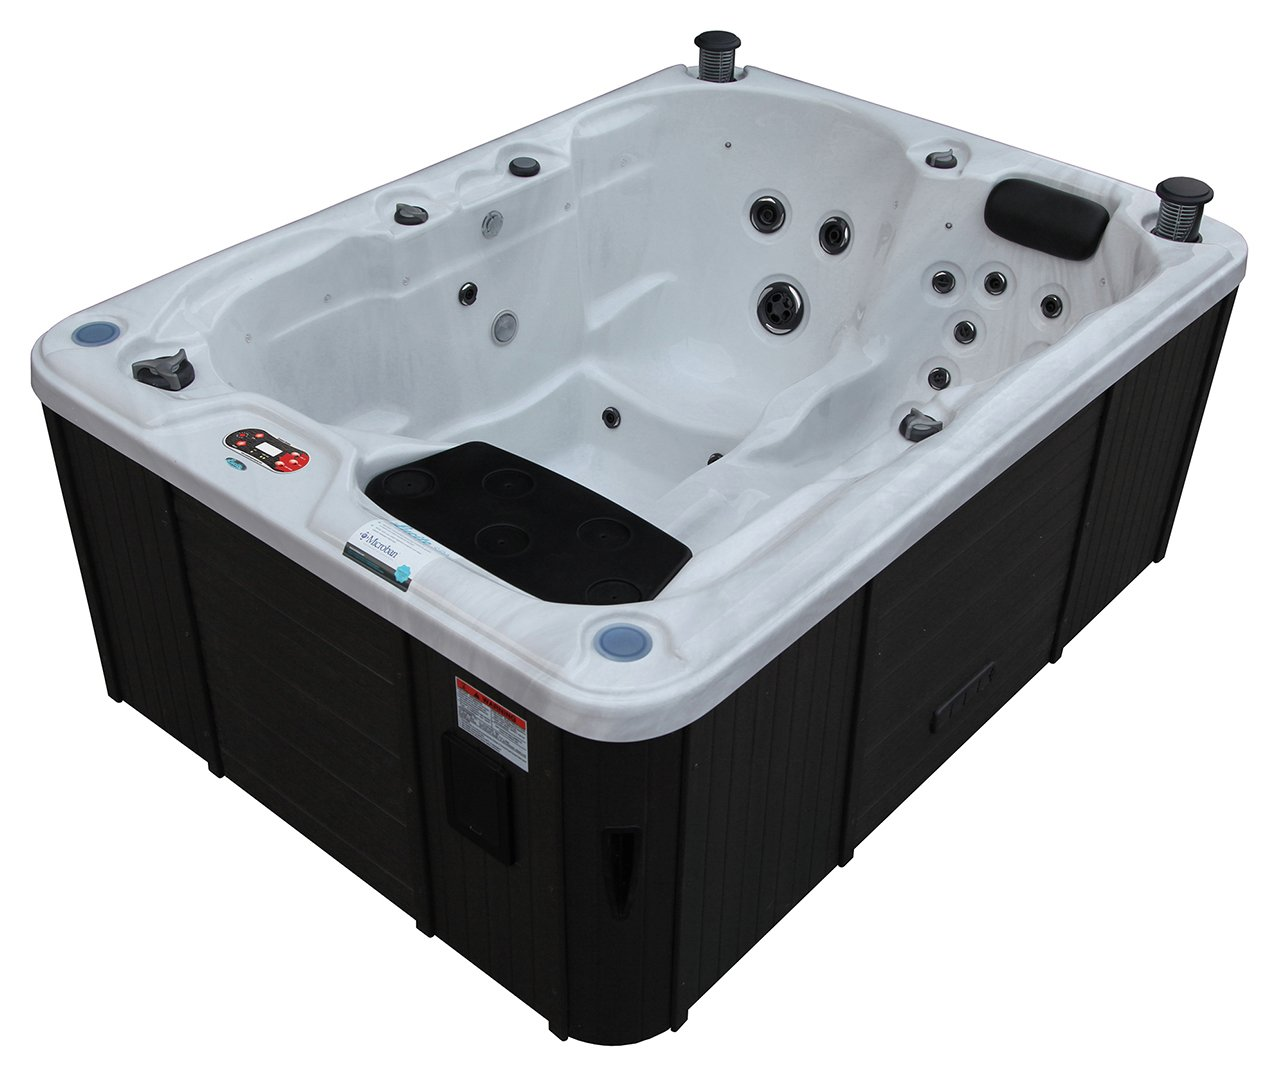 Image of Canadian Spa Co. Quebec Plug & Play 29 Jet 3 Person Hot Tub.